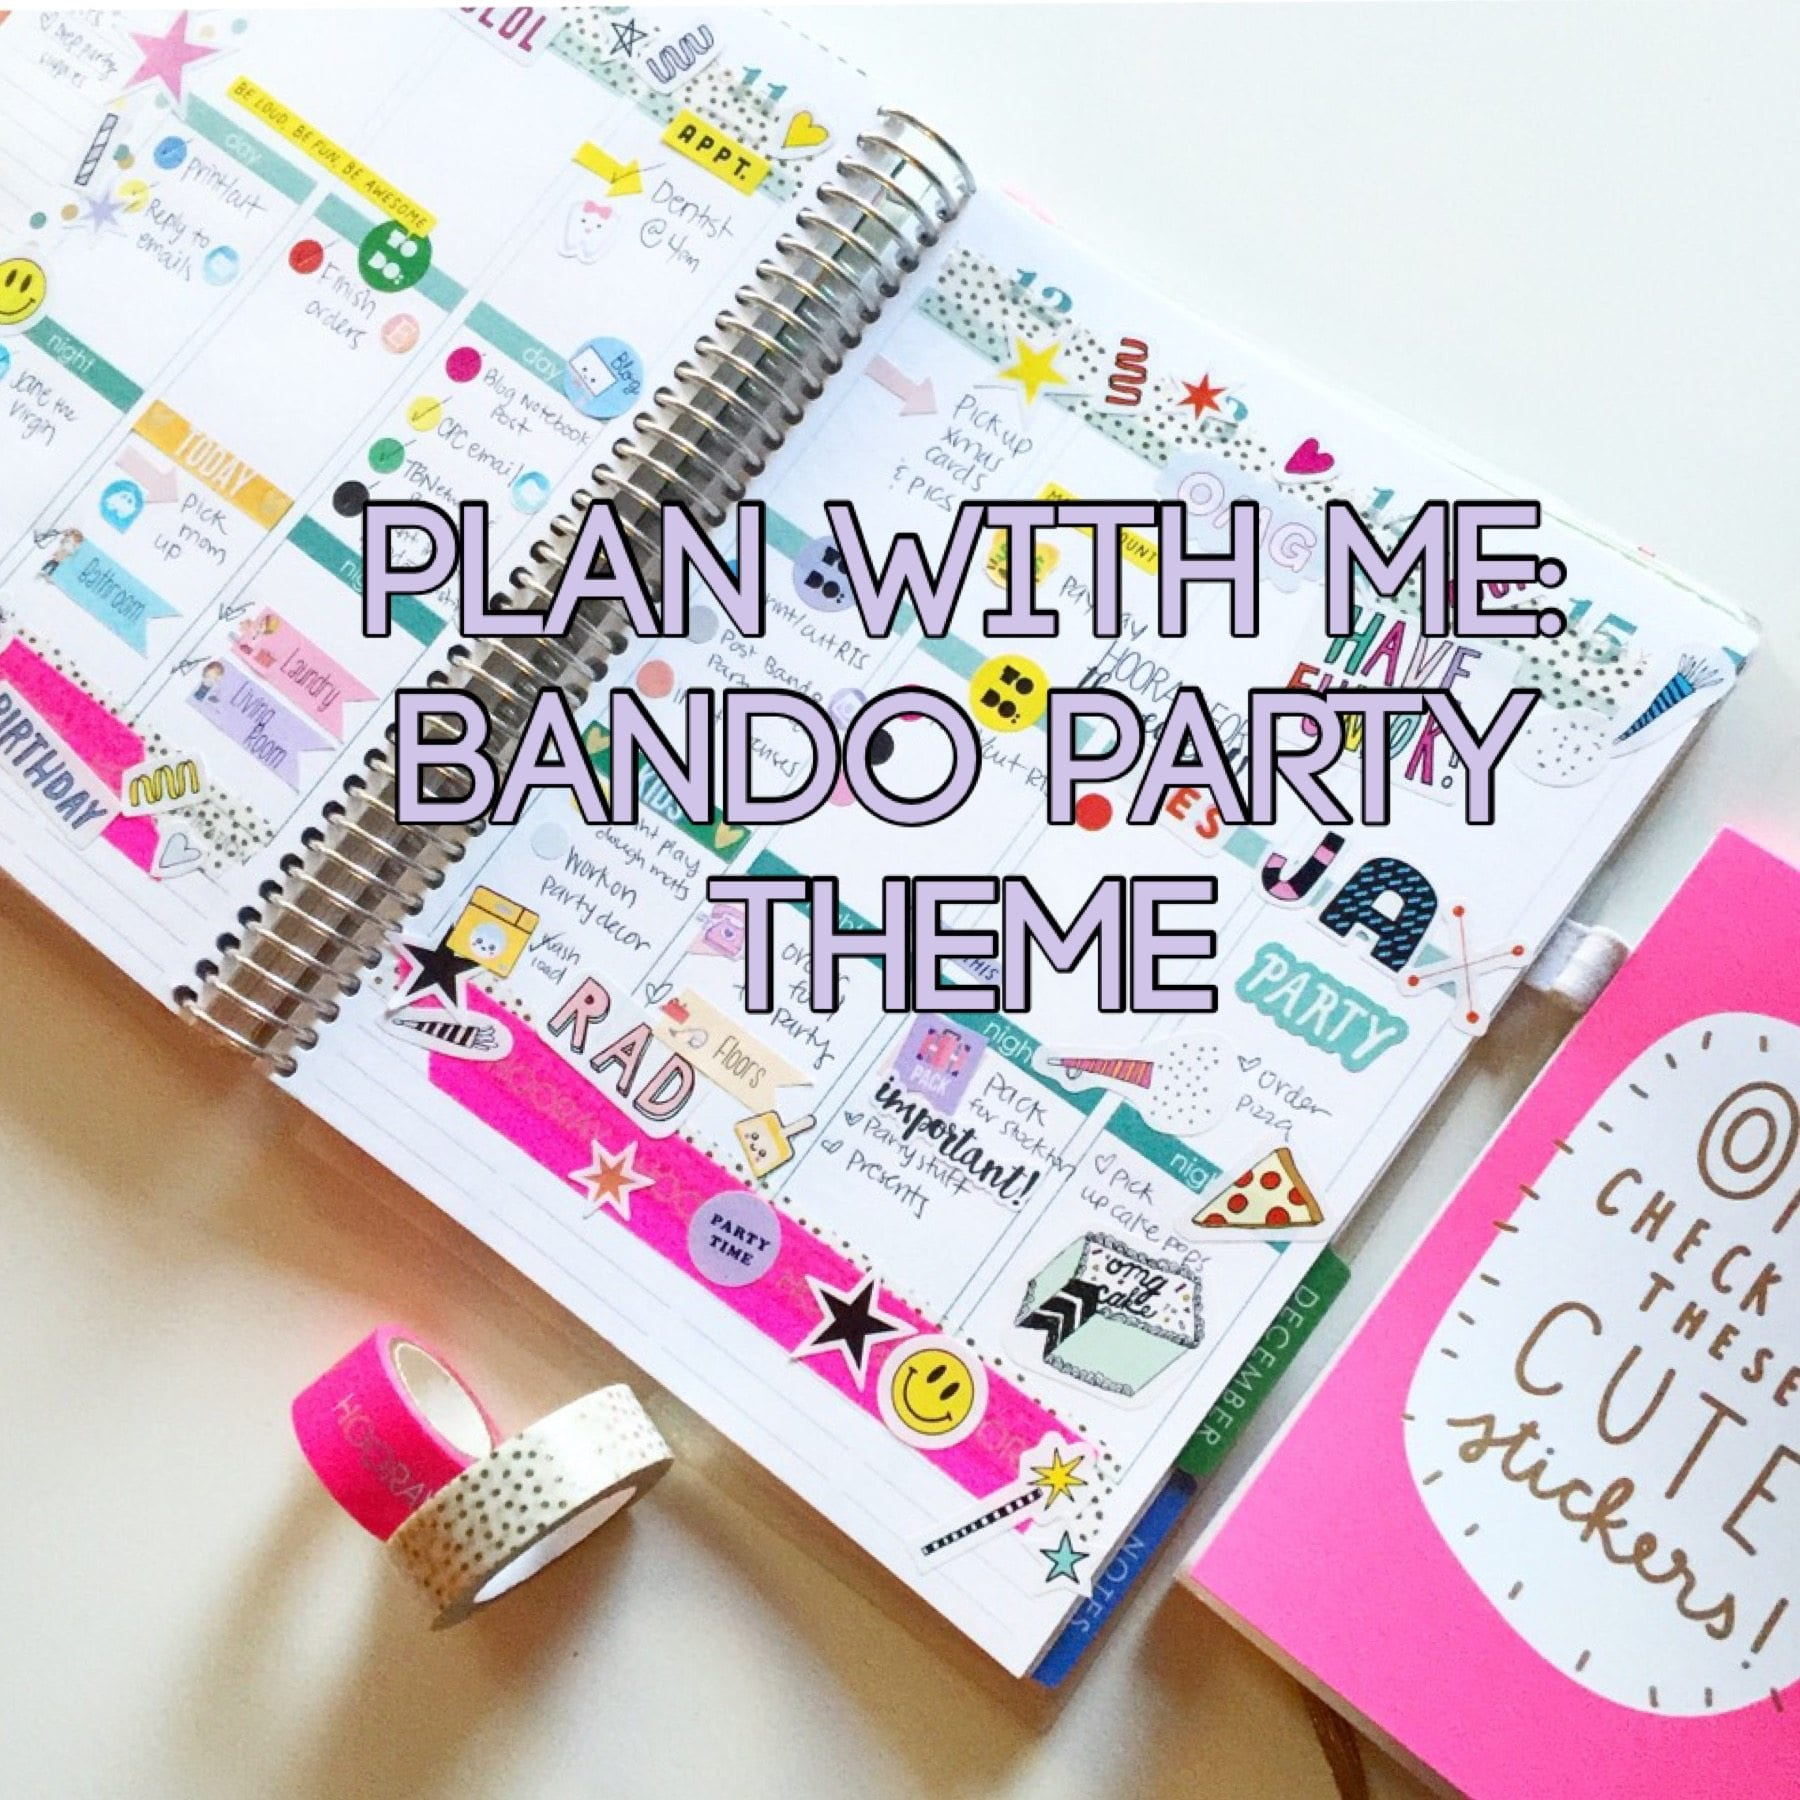 Plan With Me Bando Party Theme In My Erin Condren Planner